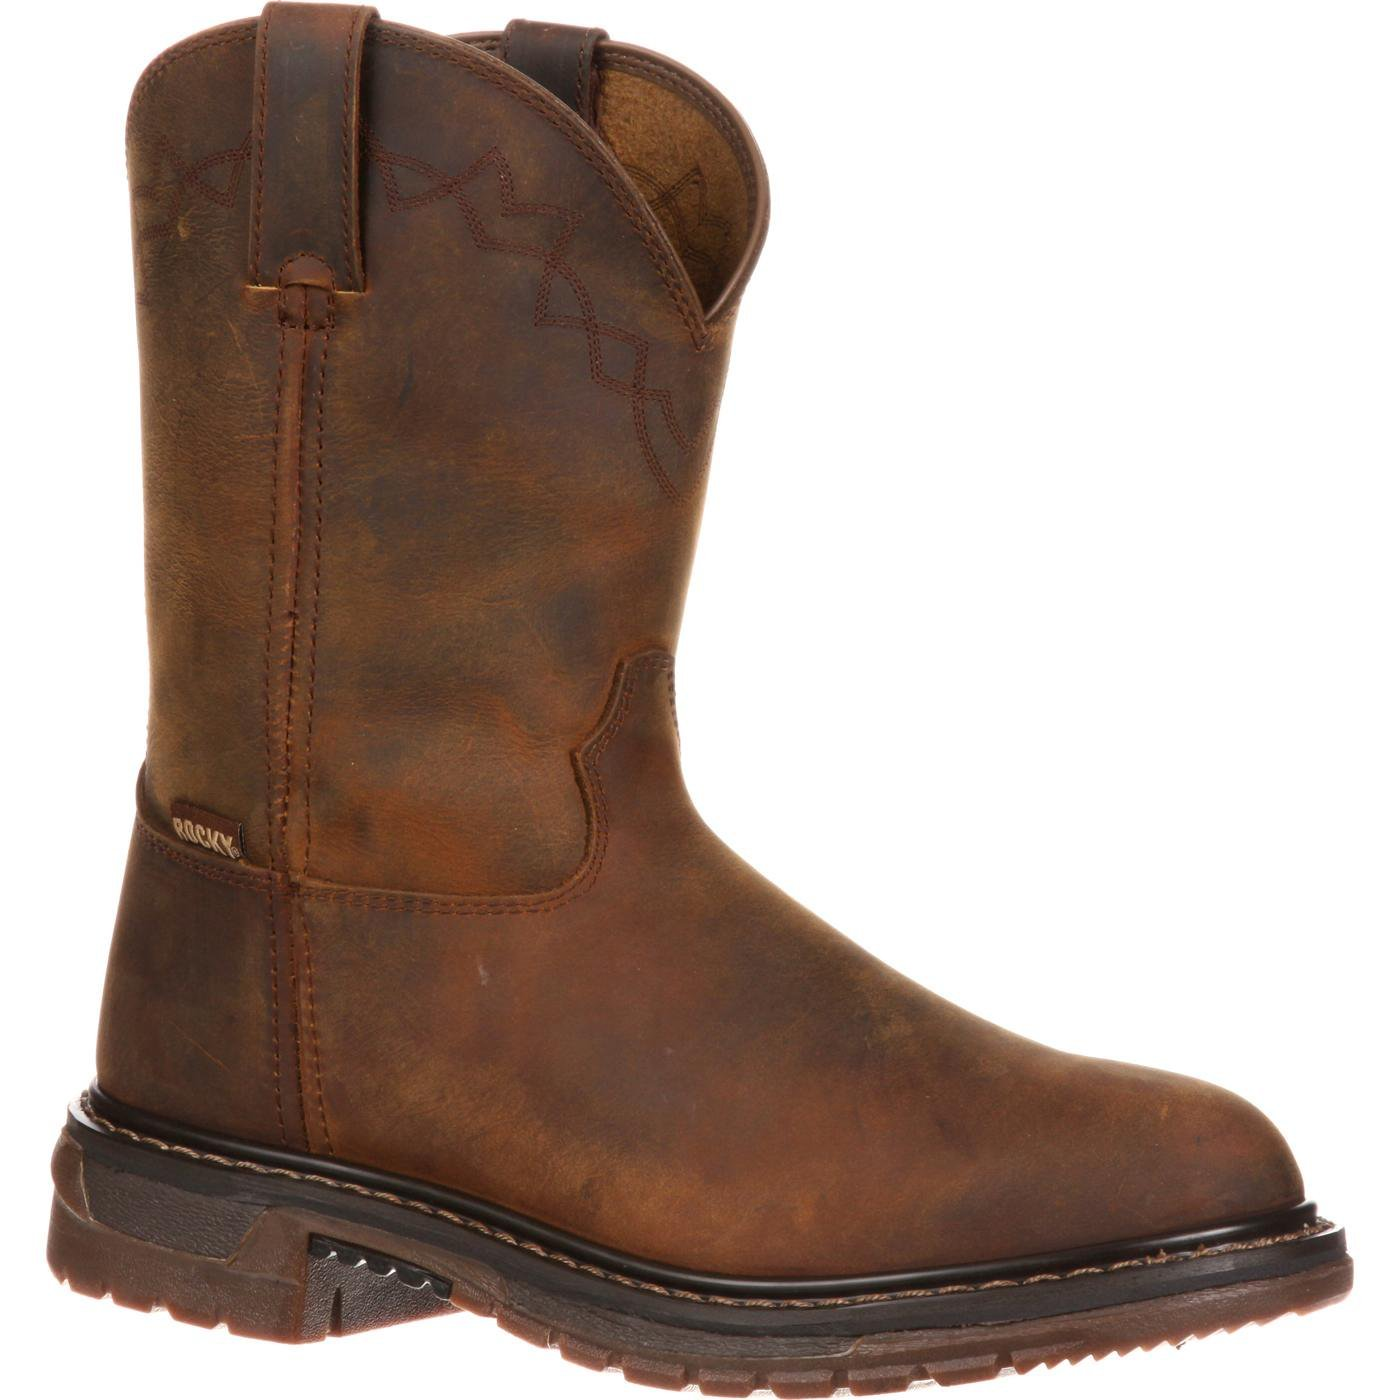 ROCKY Men's FQ0001108 Western Boot, Trail Brown, 10.5 M US by ROCKY